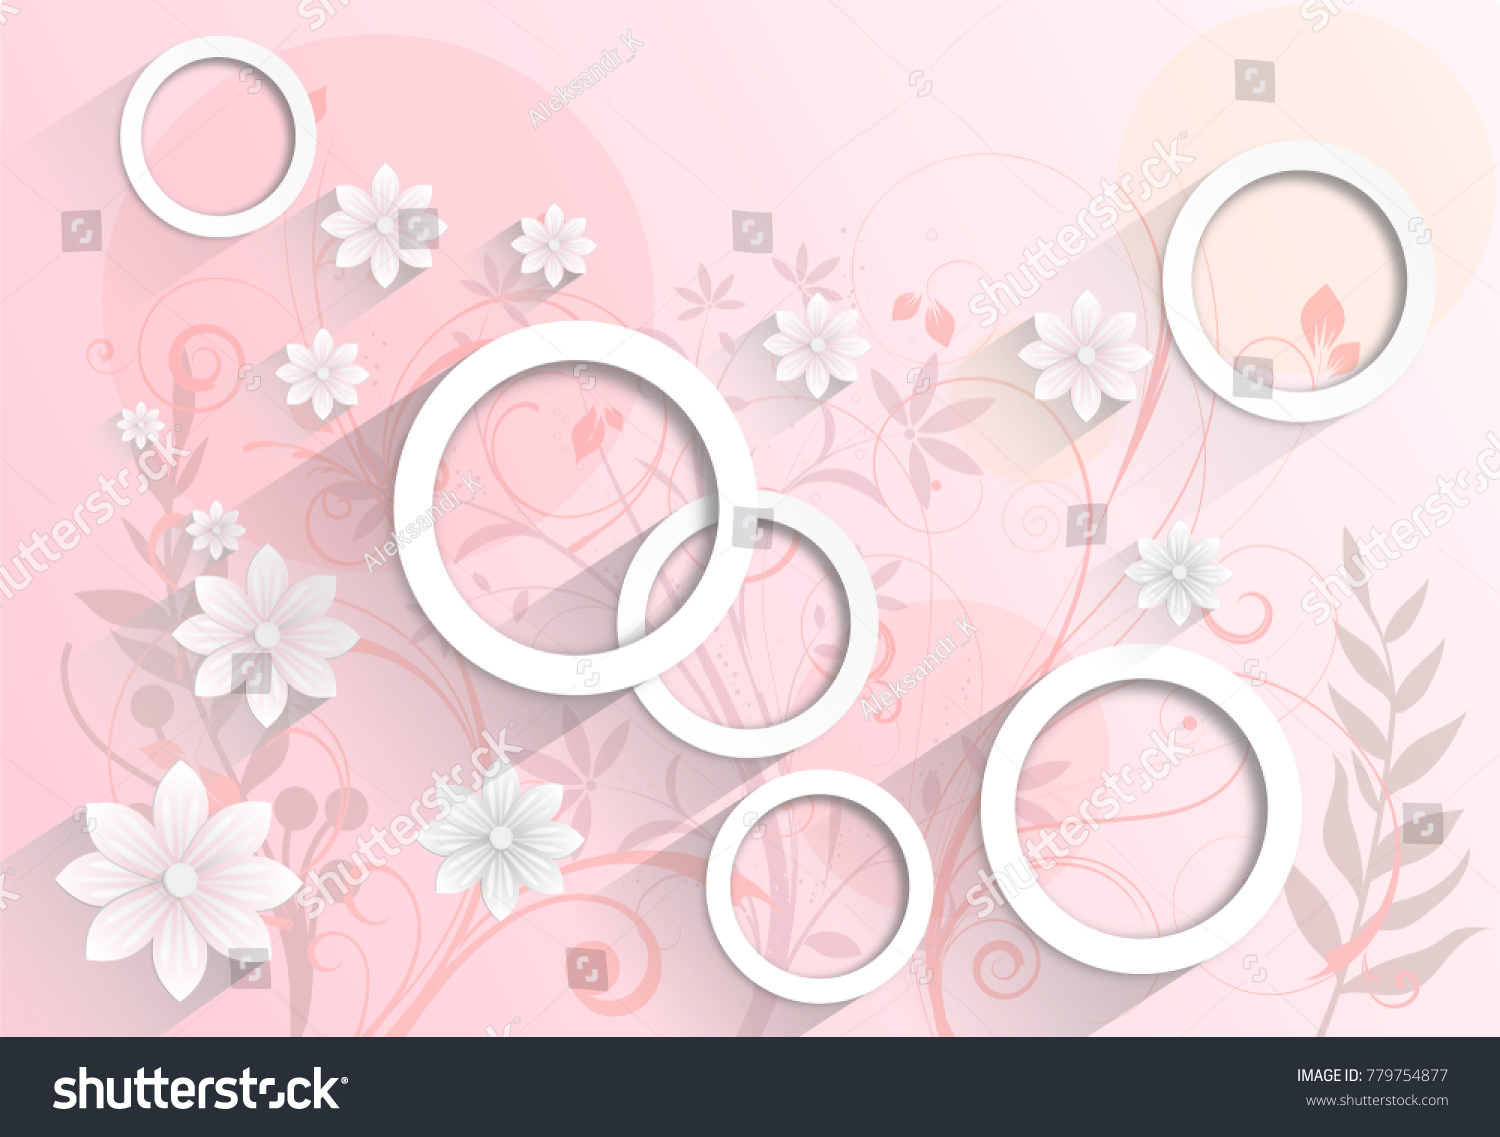 Abstract Pink Wallpaper With Flowers Photo 3D Rendering